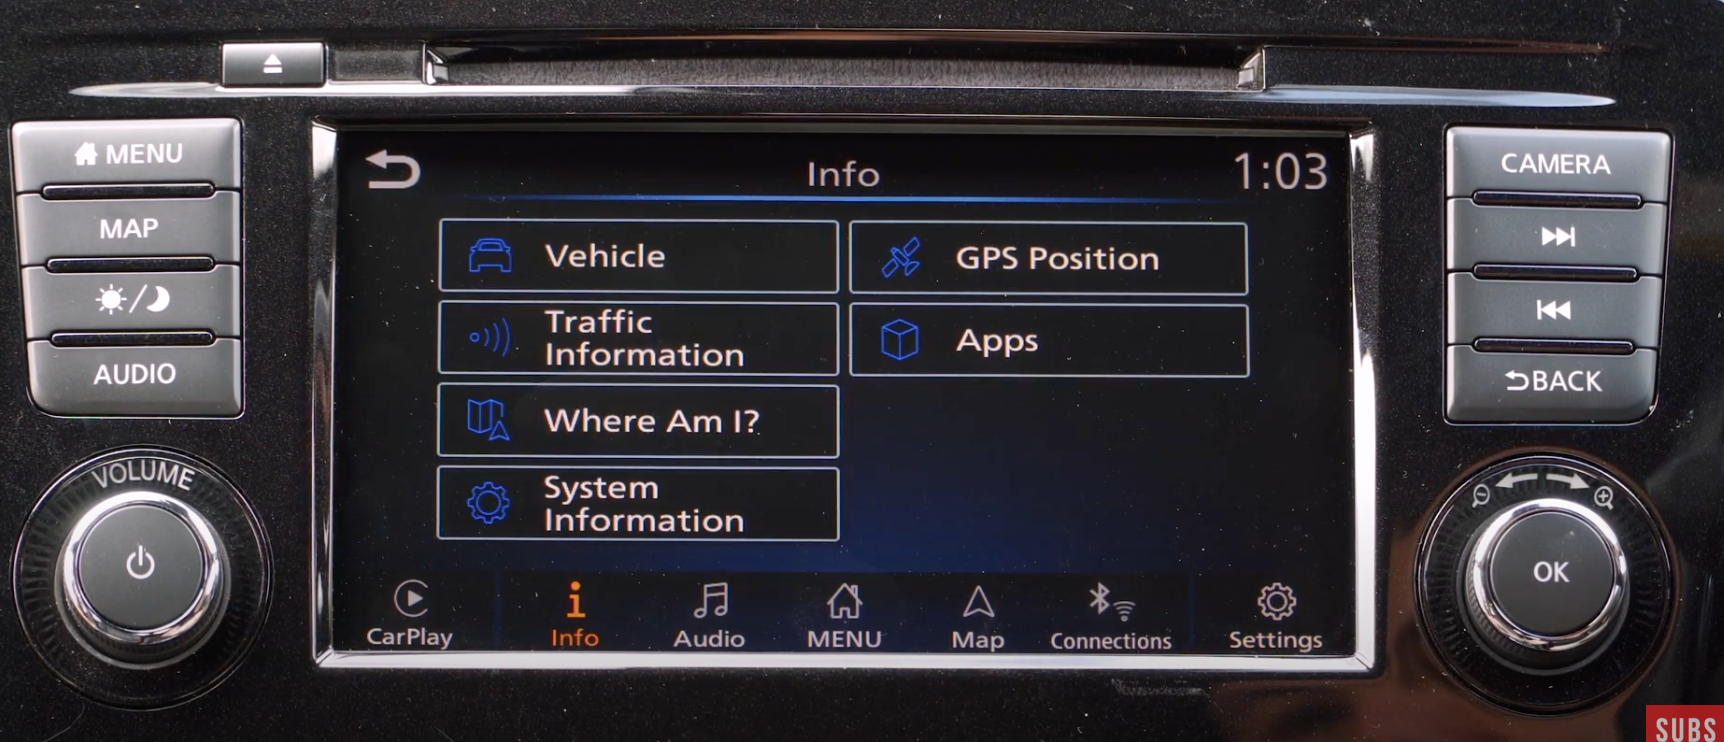 A list of information about various things in the car such as the vehicle, apps or system information